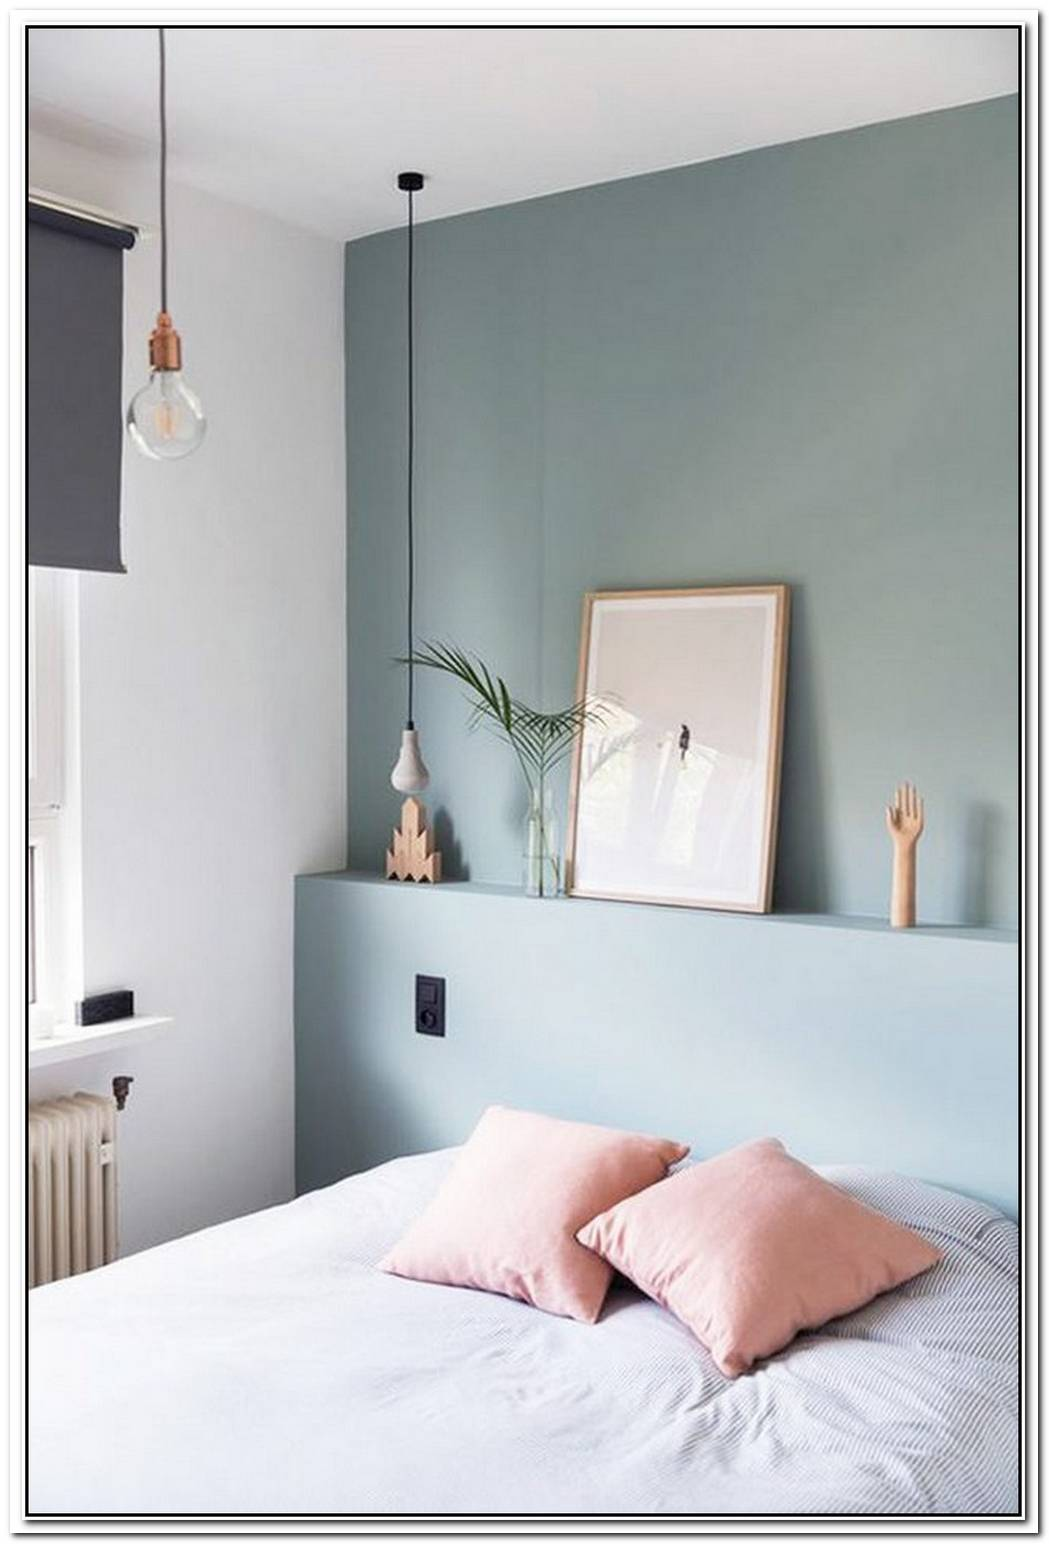 15 Cool Ways To Make A Small Bedroom Look Bigger